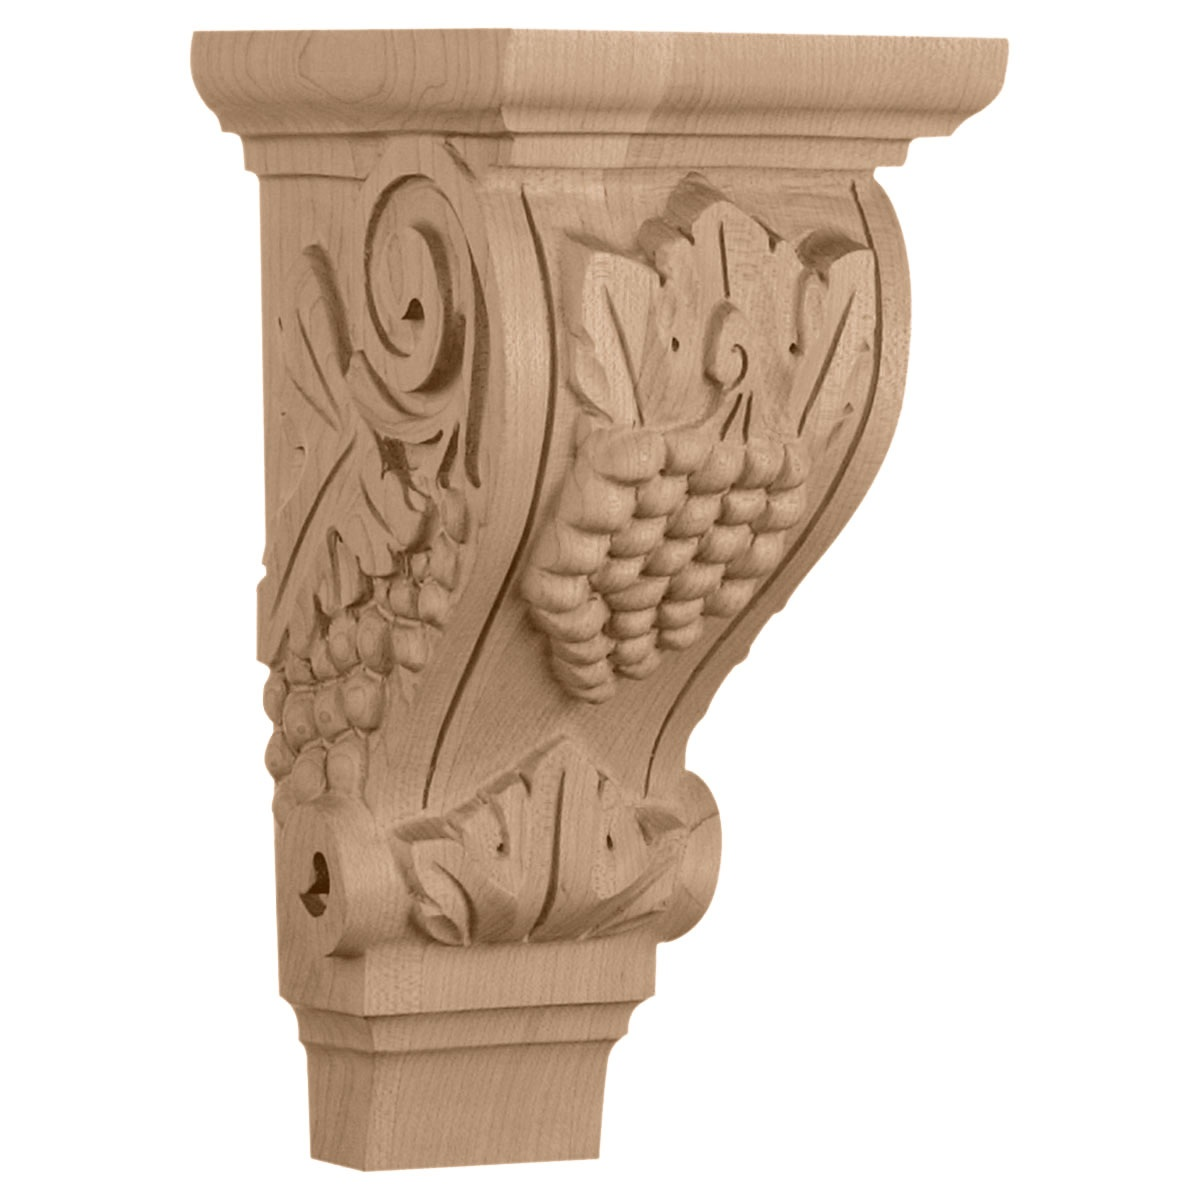 "CORGR2 Medium Grape Corbels 4 3/4""W x 5""D x 9 1/2""H"